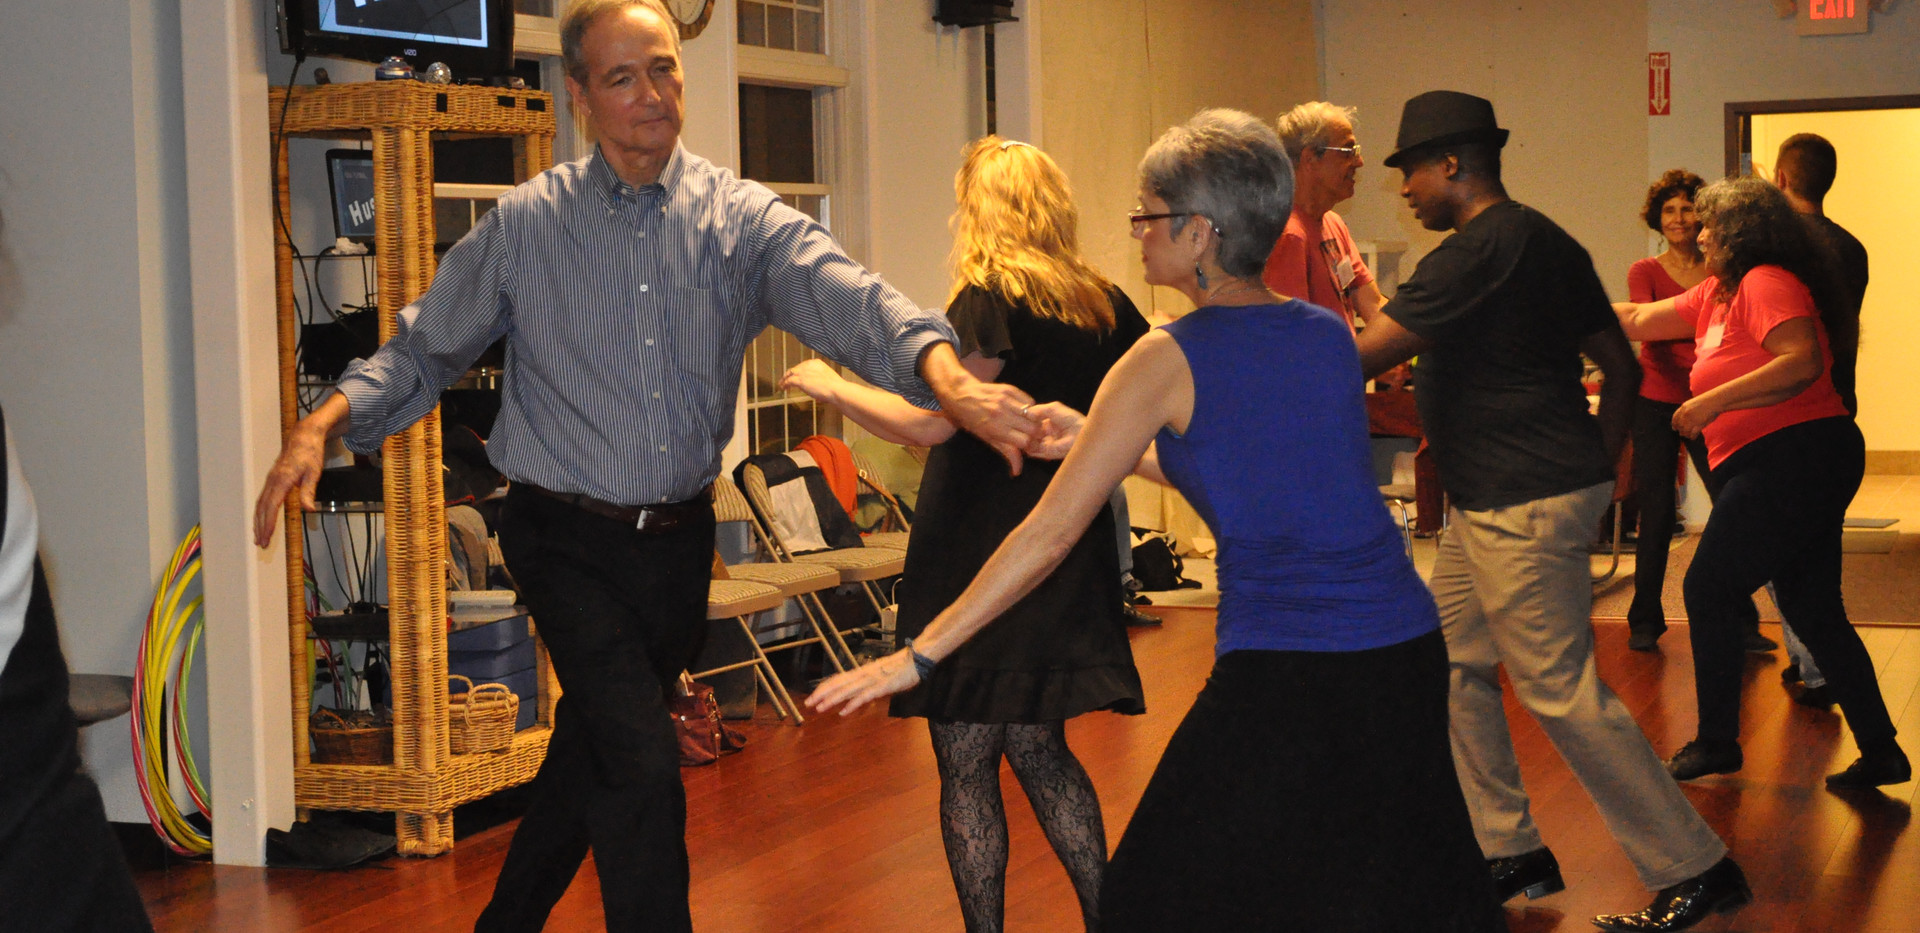 Our first HVCD Ballroom party on new floor - 2